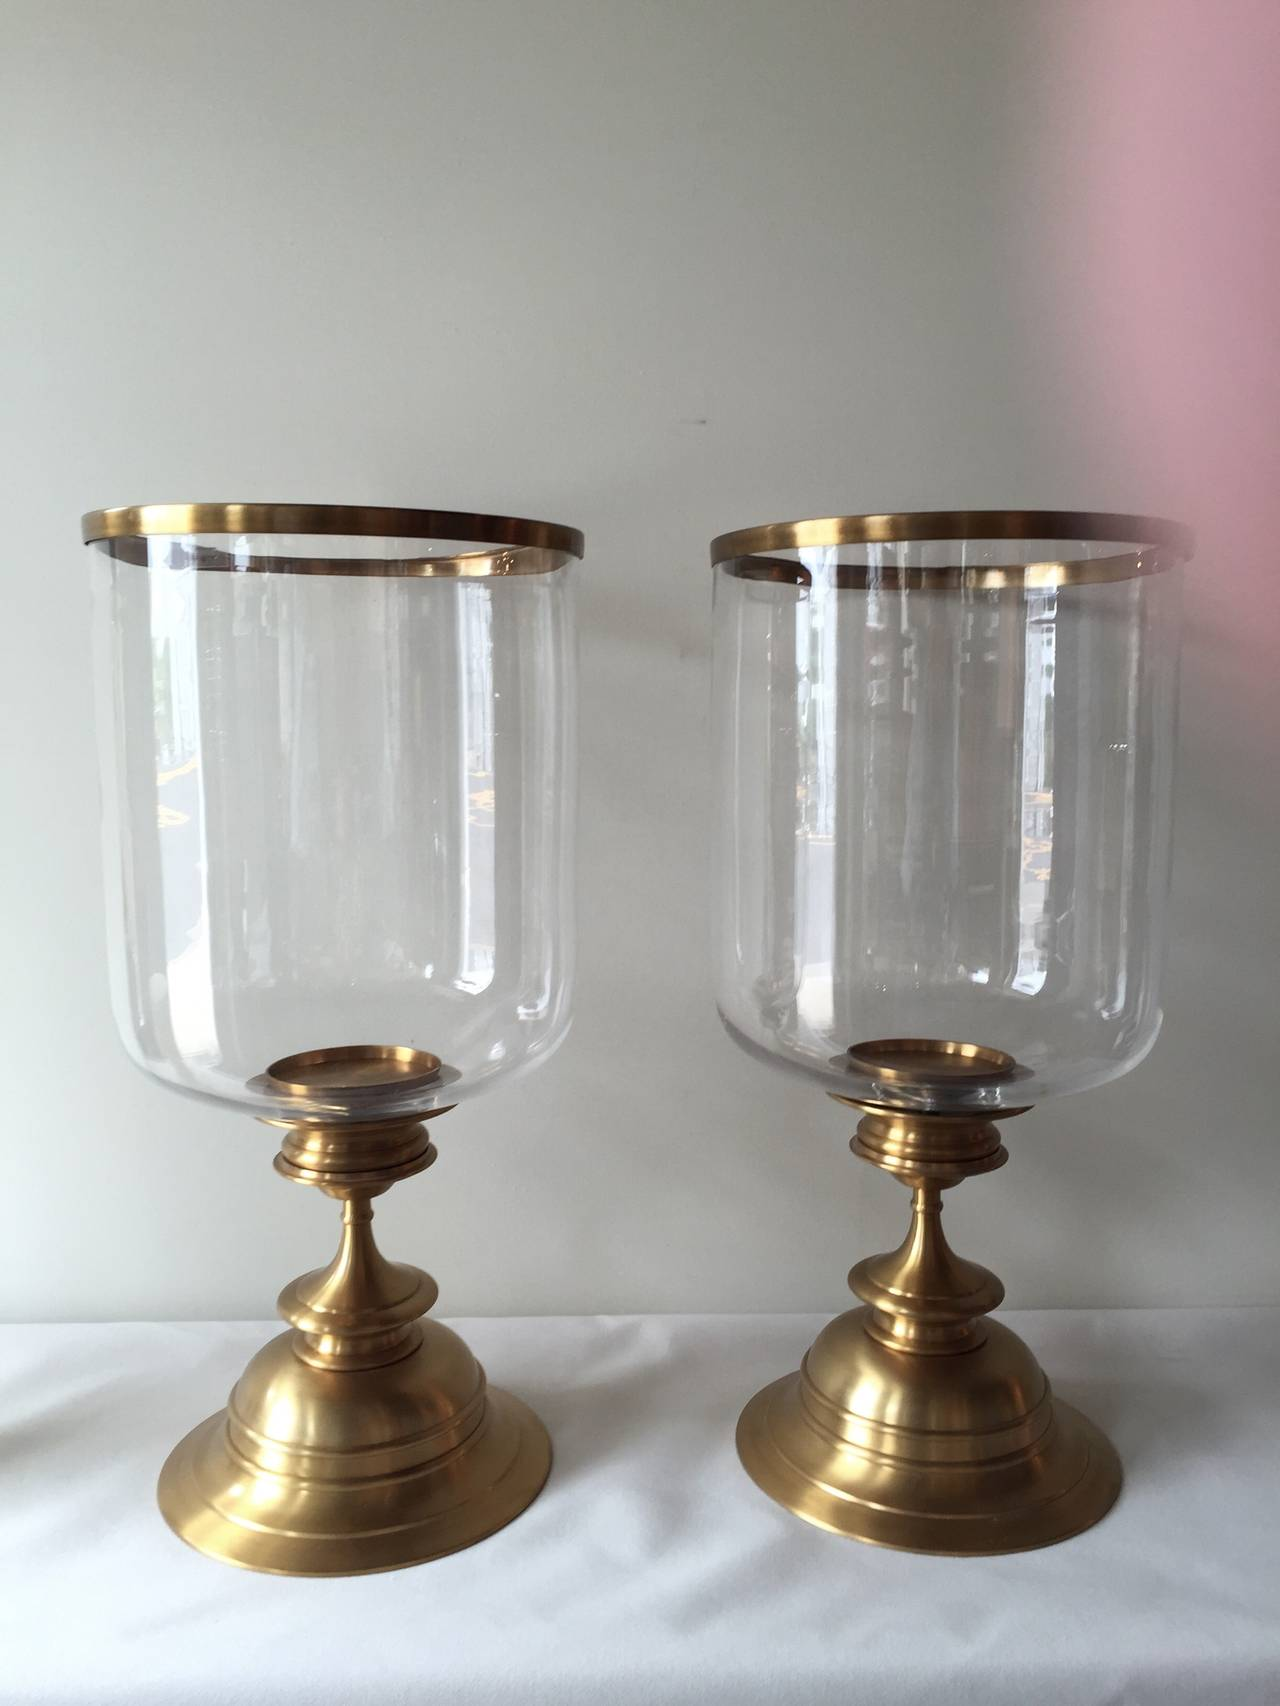 Greatest Pair of Brass Satin Finish Extra Large Hurricane Lamps at 1stdibs VQ72